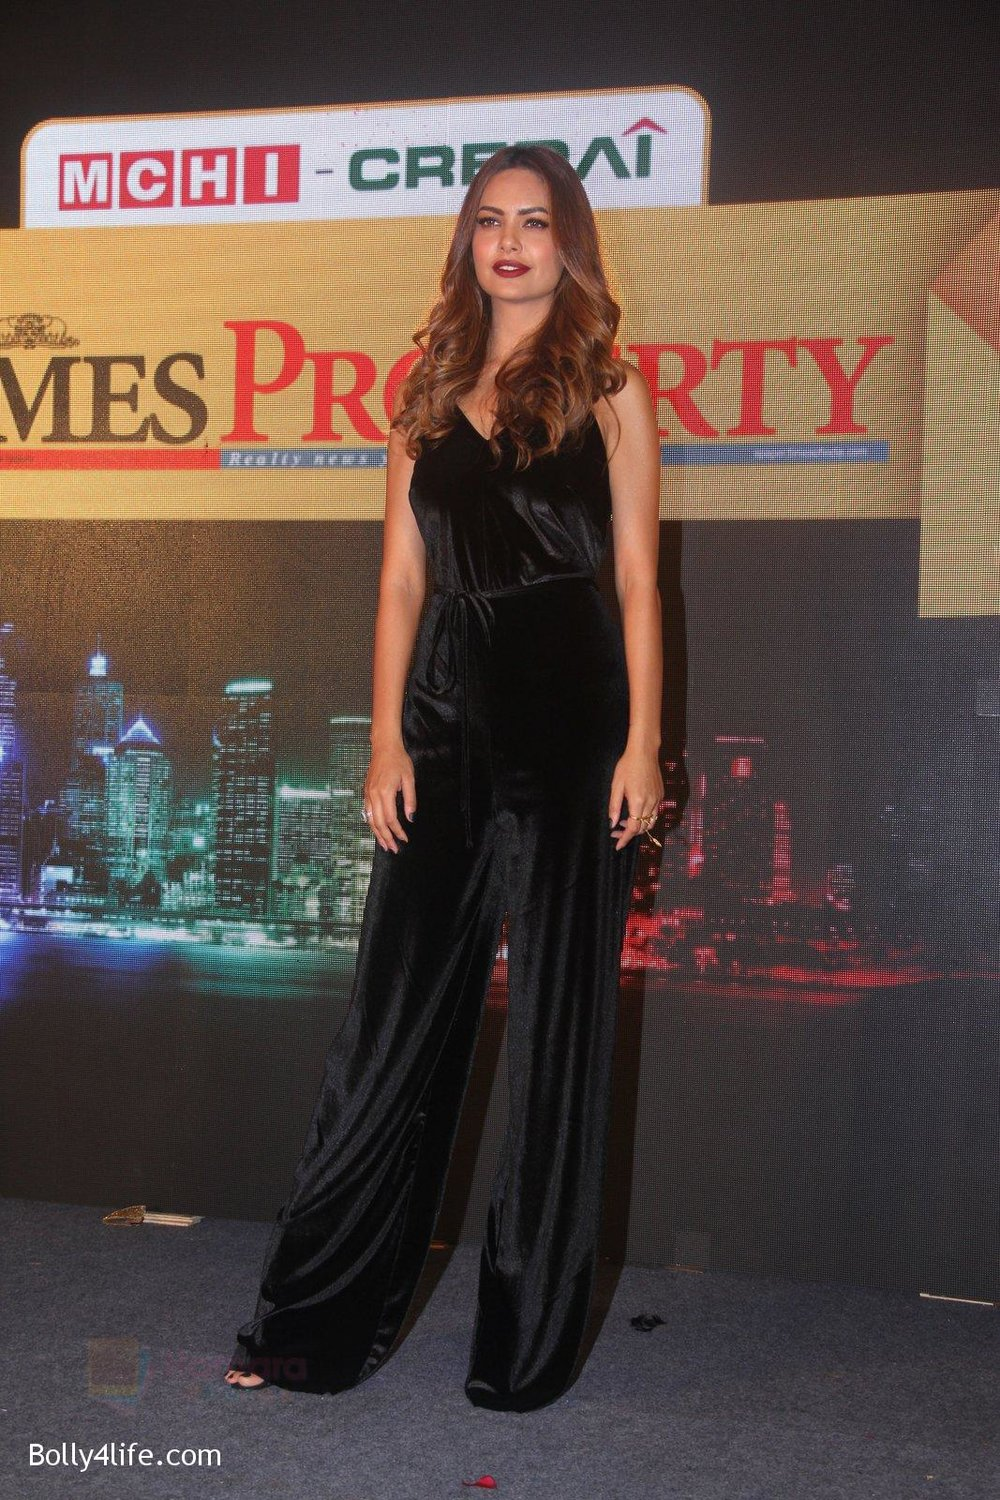 Esha-Gupta-at-Times-Property-event-on-8th-Oct-2016-18.jpg